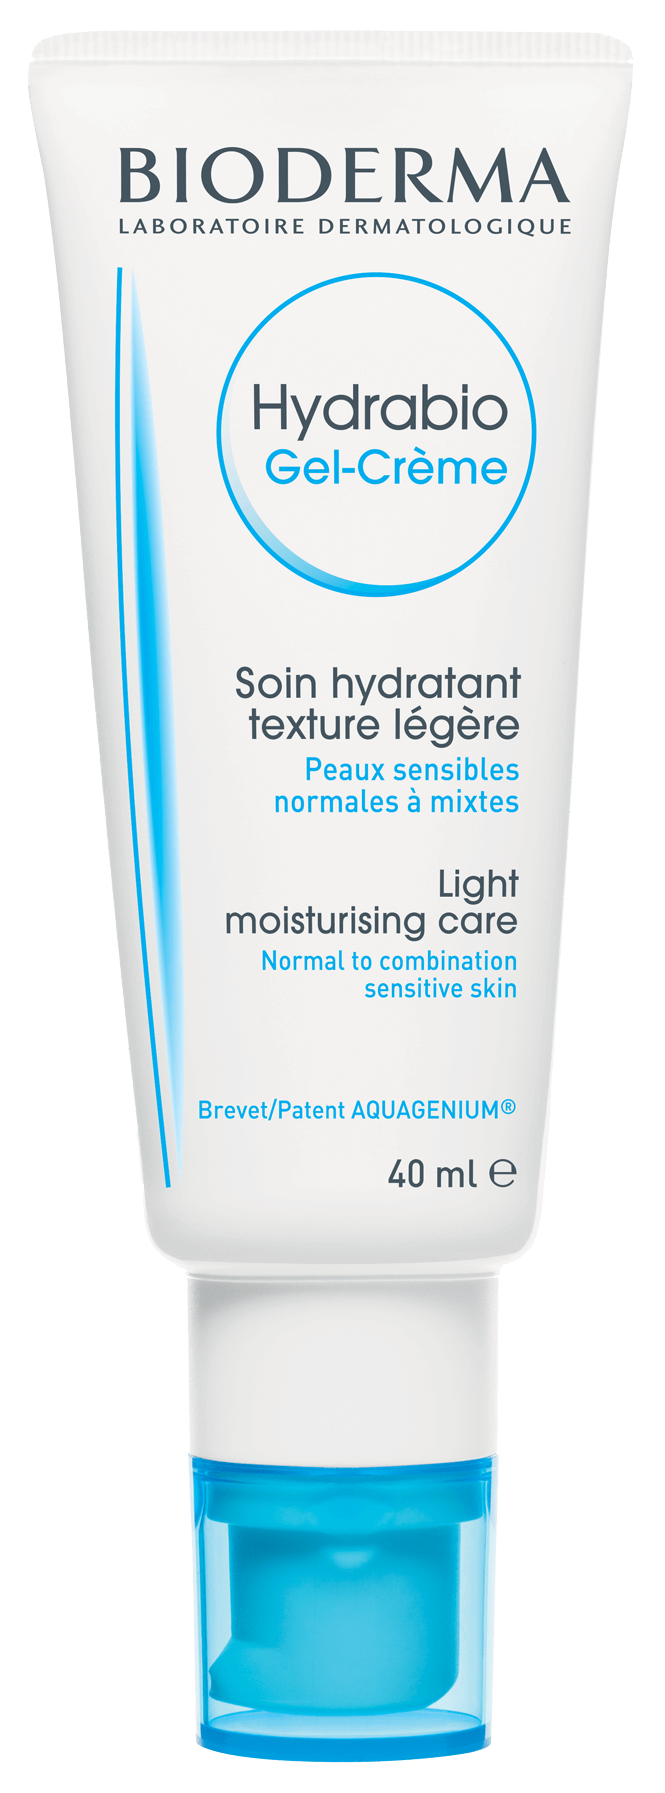 Hydrabio Gel-Creme 40 mL